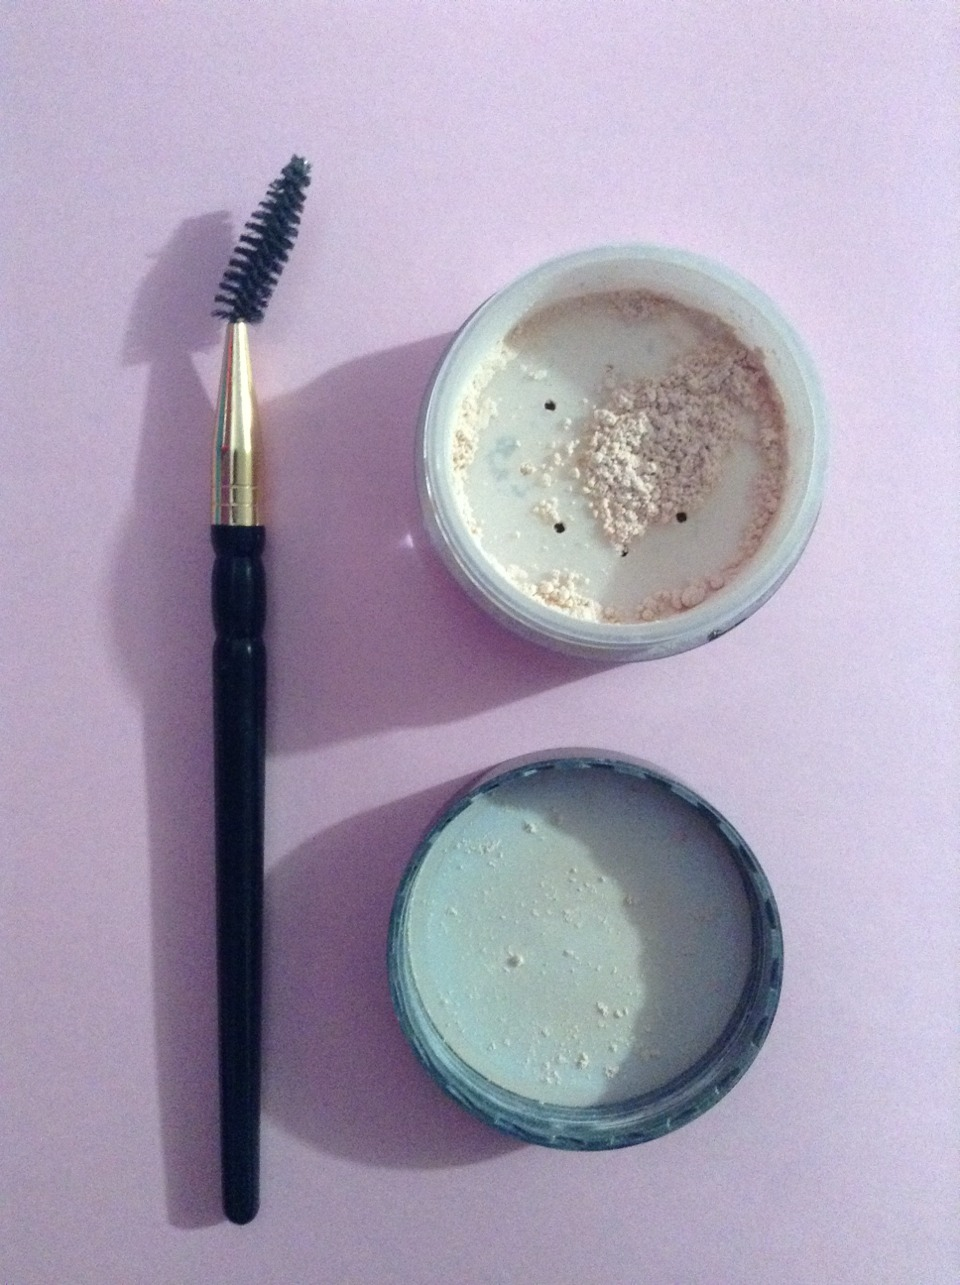 You will need a spooley brush and some translucent powder.